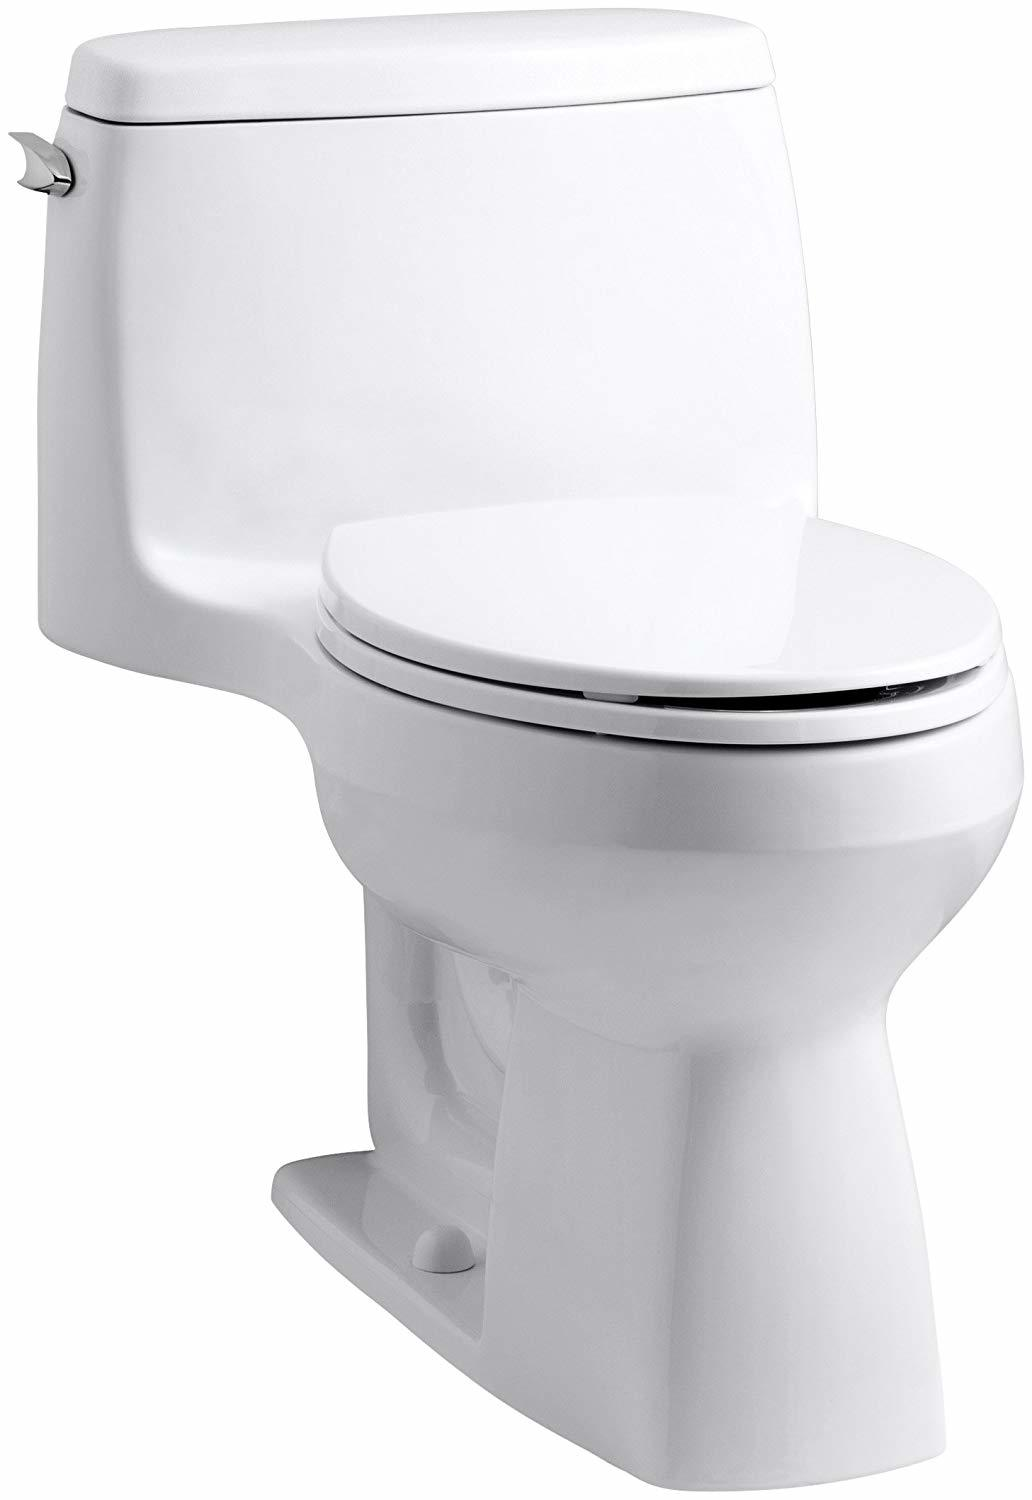 The Best Toilet Reviews Best Flushing Toilet Reviews 2016